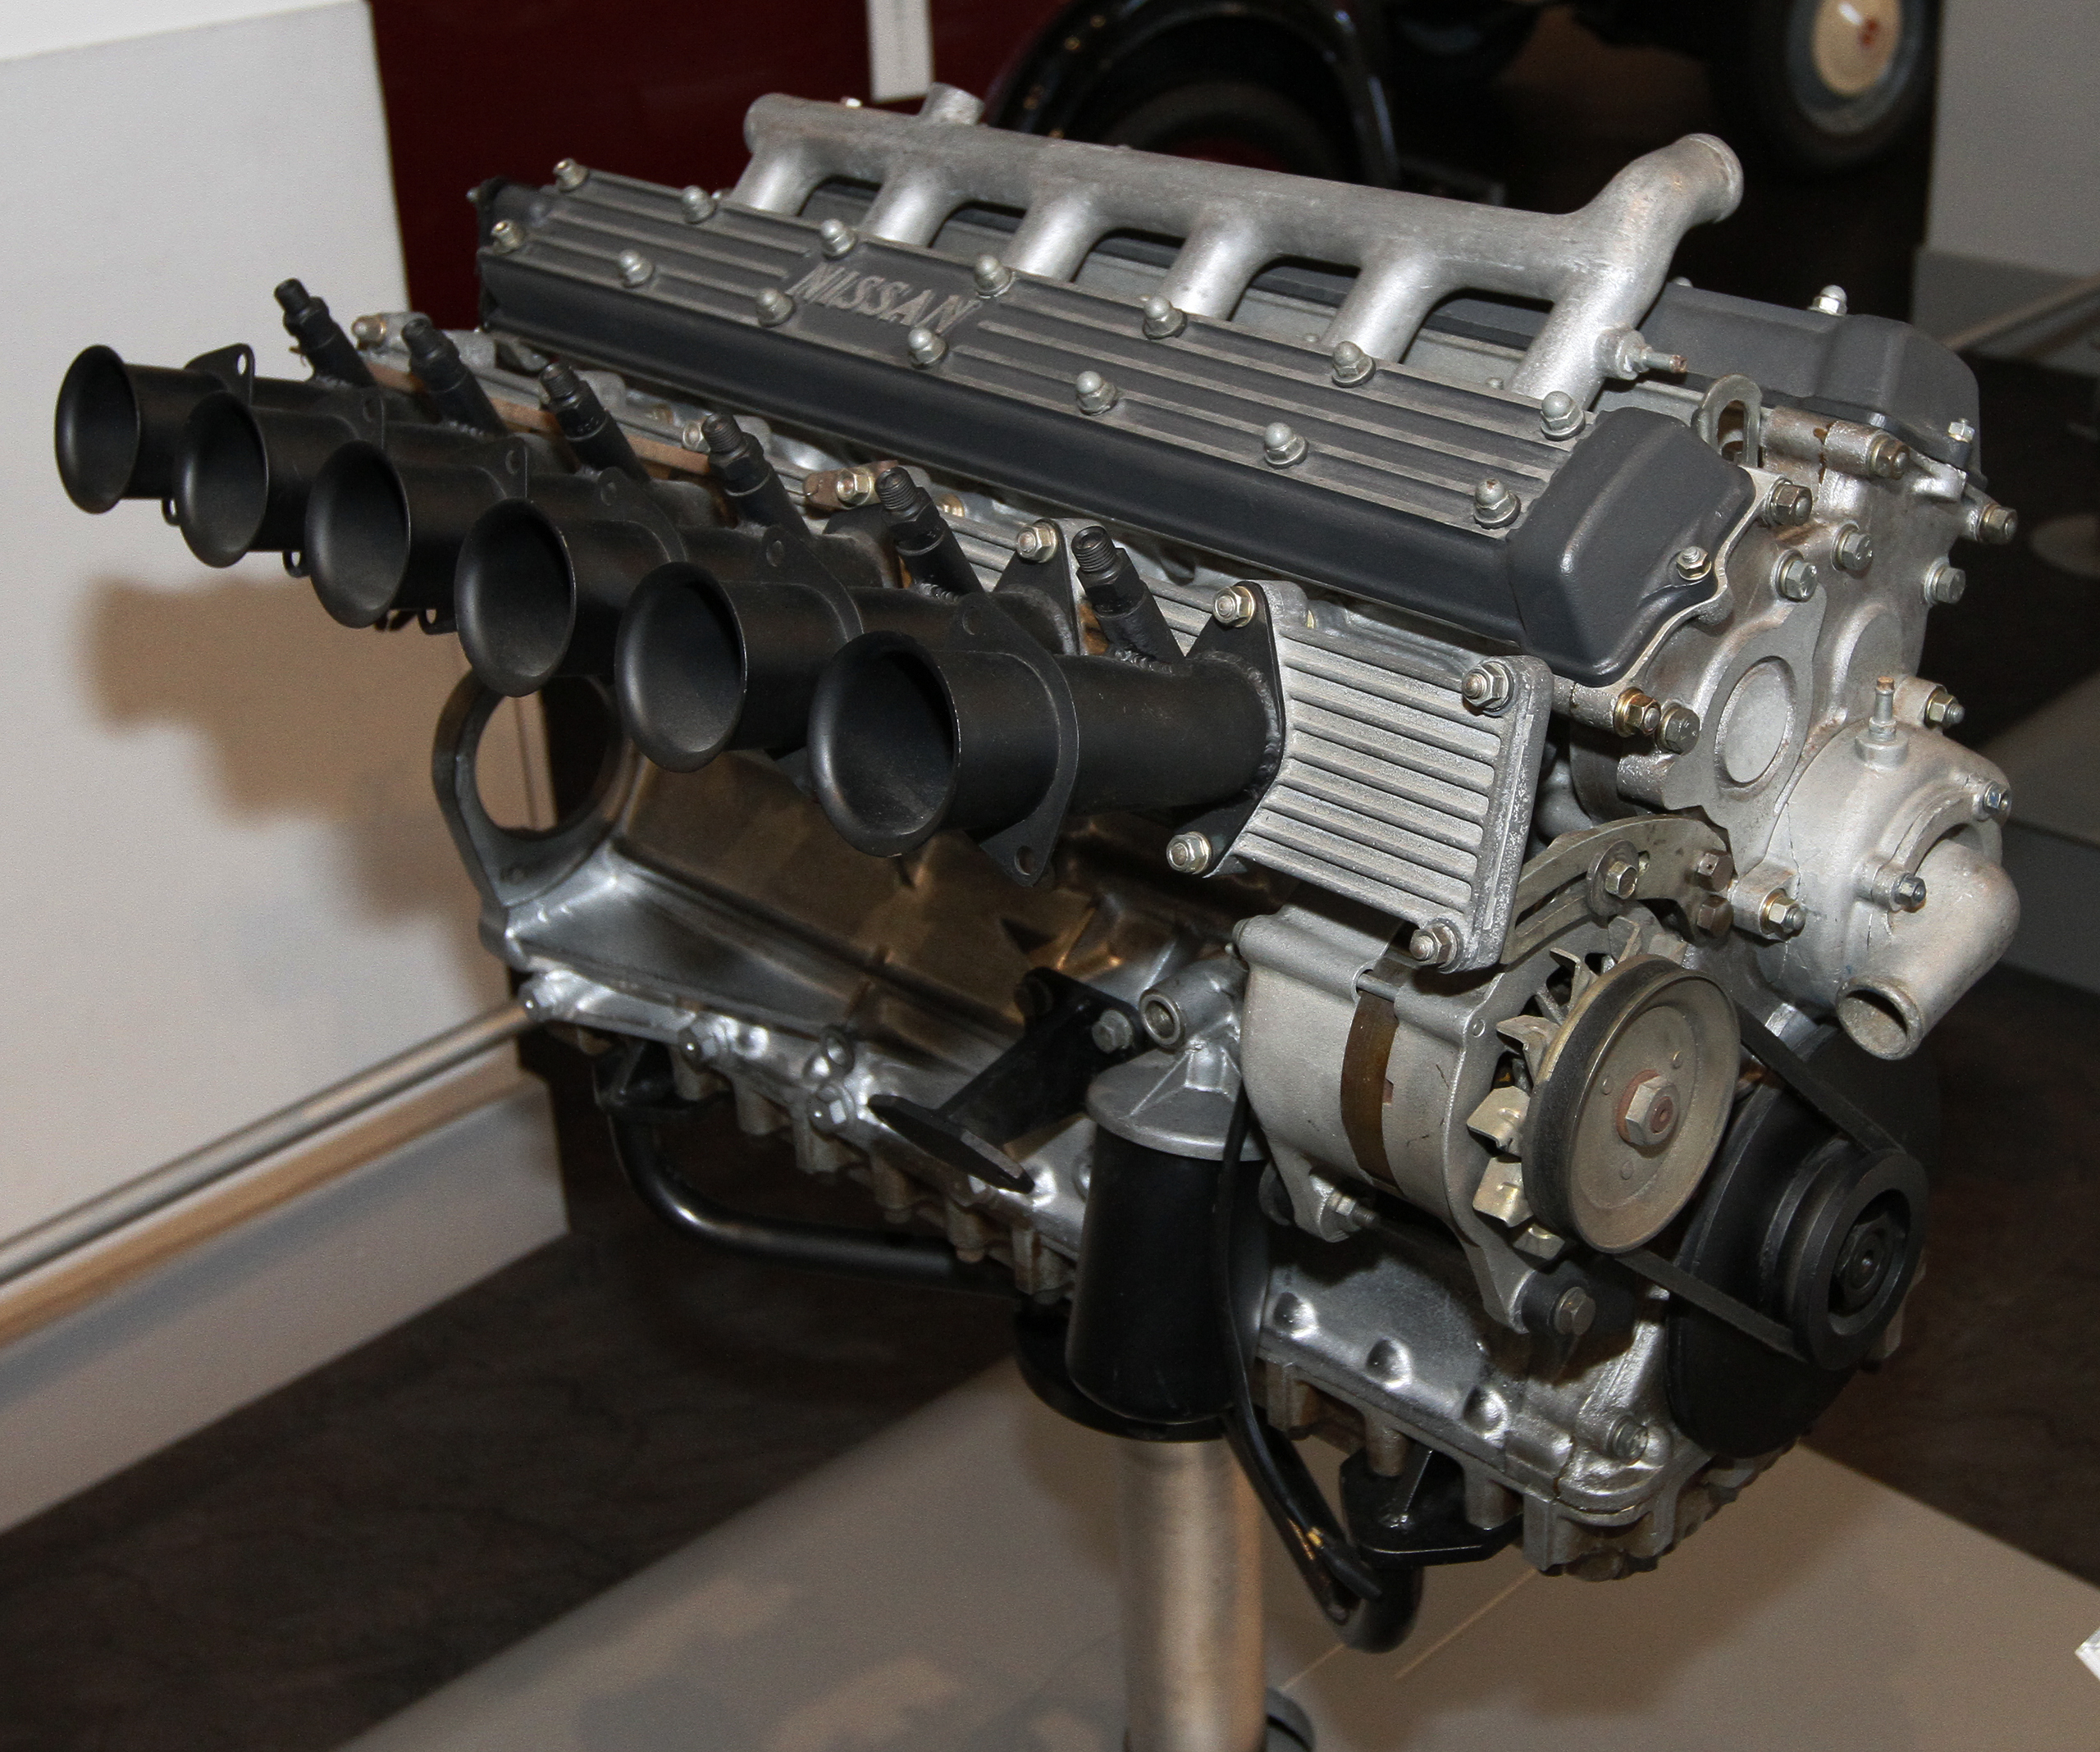 Prince_GR8_engine_Nissan_Engine_Museum.j